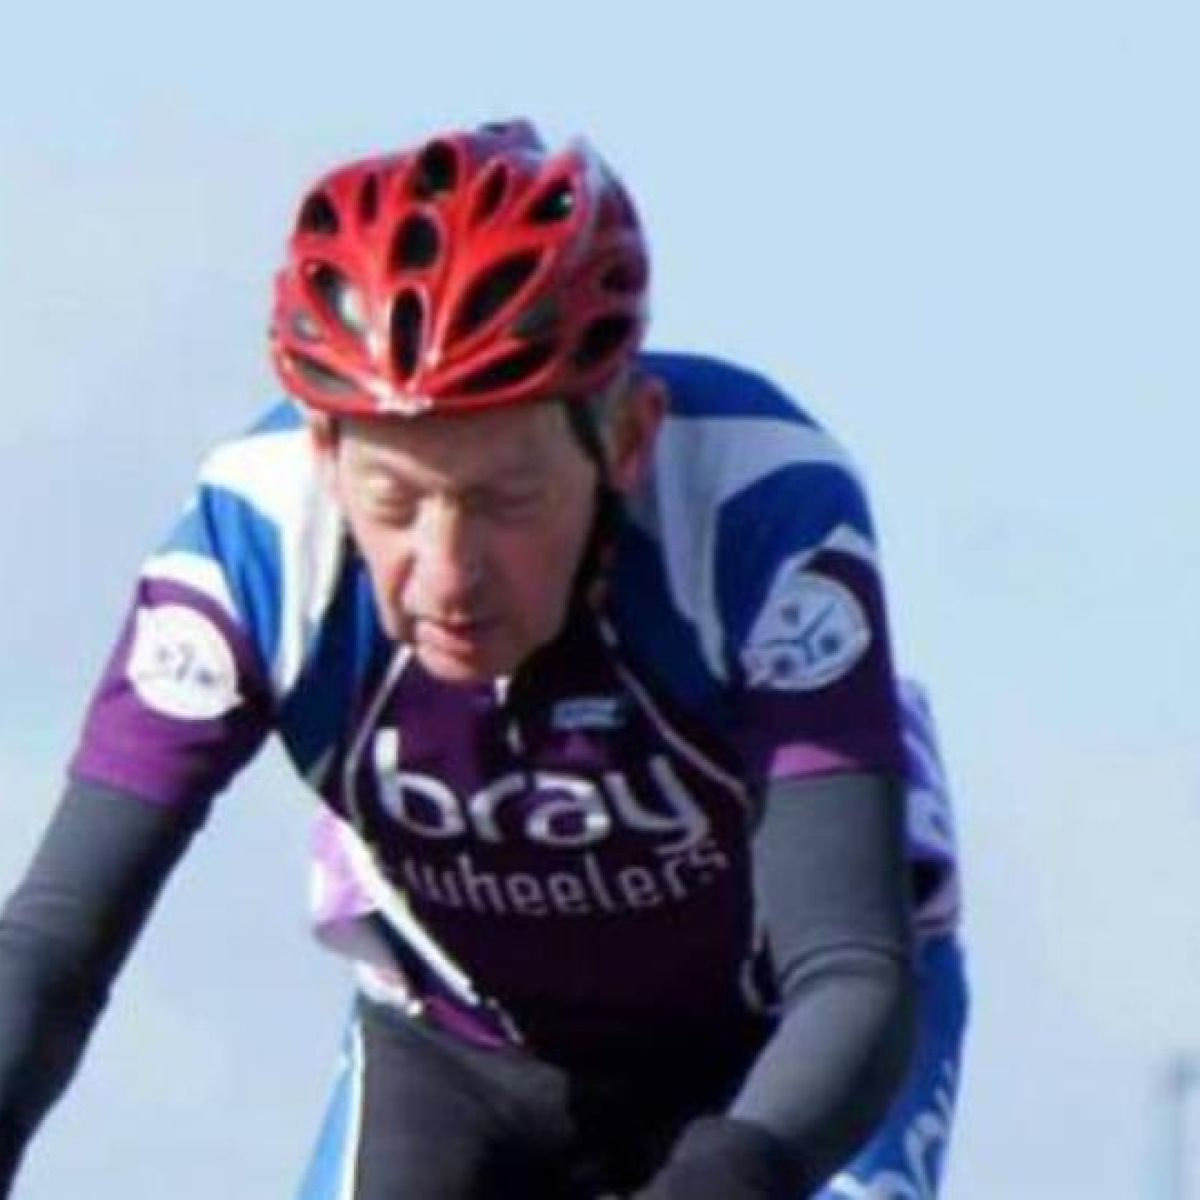 Veteran race cyclist died after falling on oil slick, inquest hears